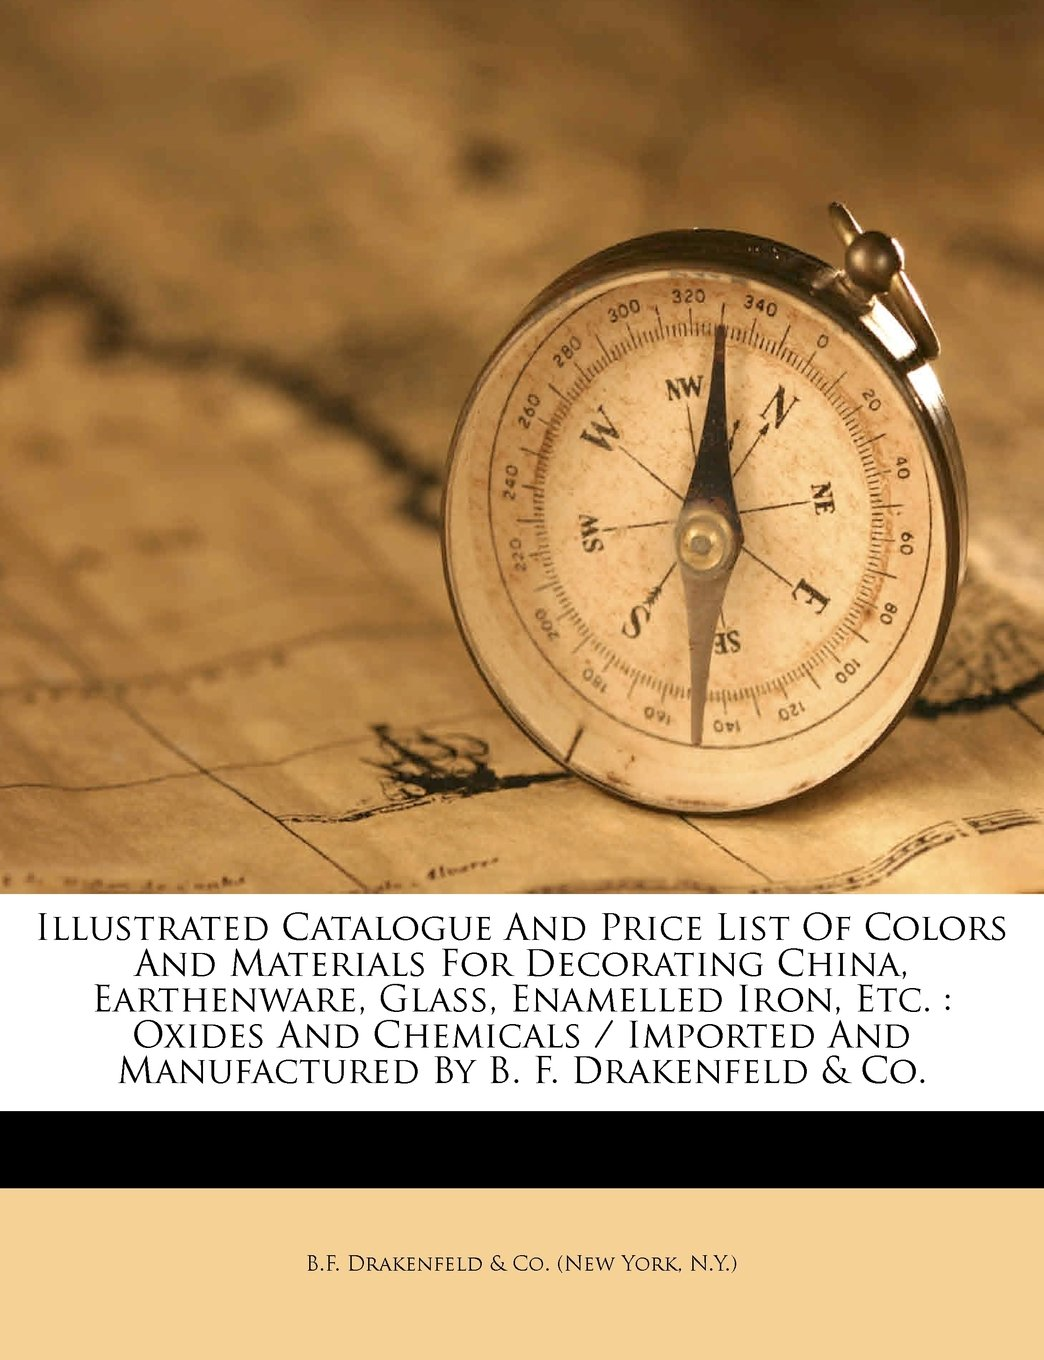 Download Illustrated Catalogue And Price List Of Colors And Materials For Decorating China, Earthenware, Glass, Enamelled Iron, Etc.: Oxides And Chemicals / Imported And Manufactured By  B. F. Drakenfeld & Co. pdf epub